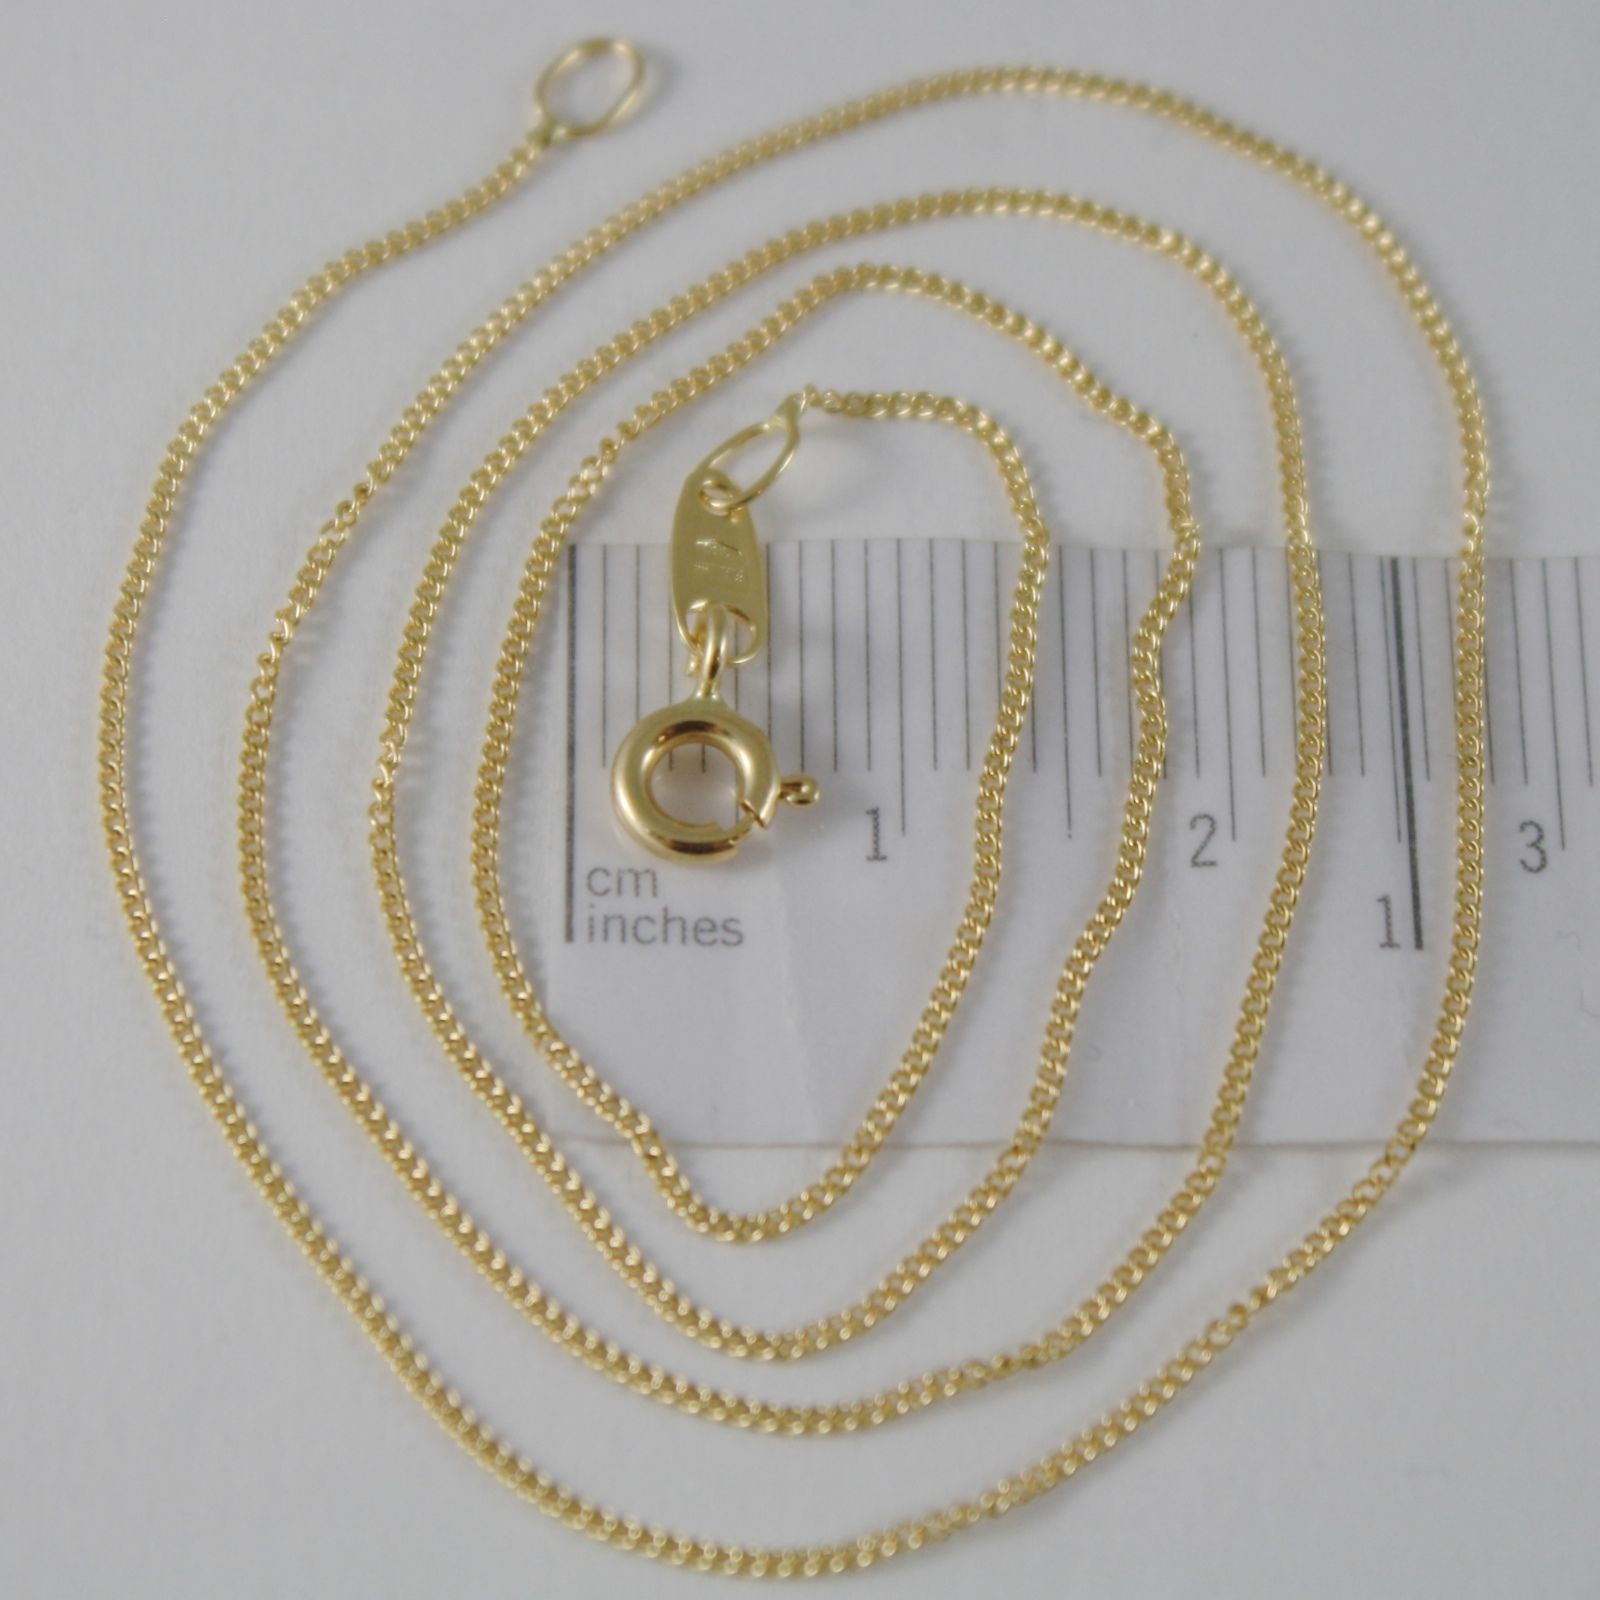 18K YELLOW GOLD CHAIN 17.7 MINI CUBAN CURB GOURMETTE MESH 0.9 MM, MADE IN ITALY